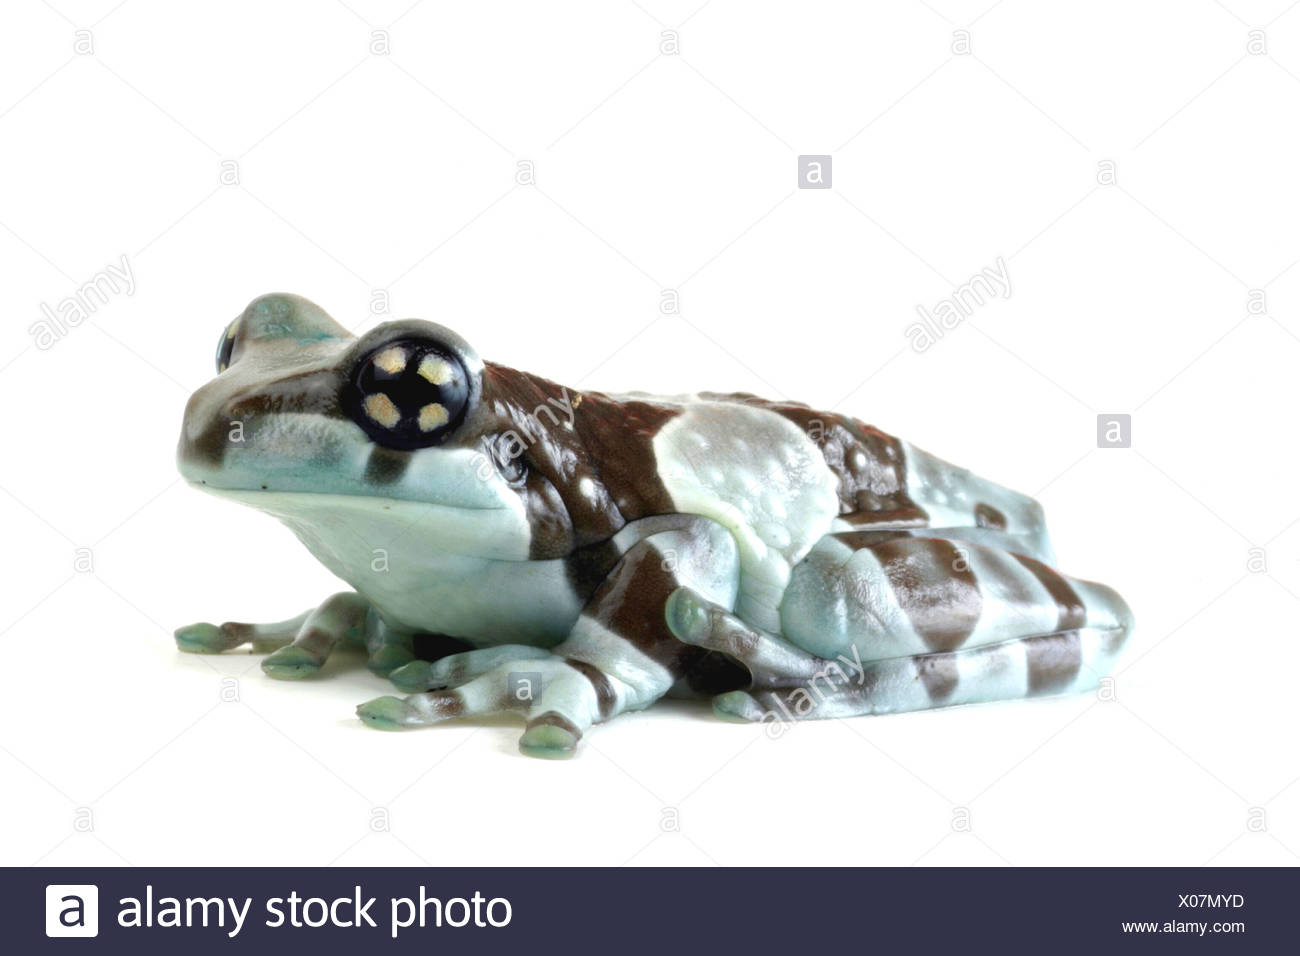 Amazonian canopy frog (Phrynohyas resinifictrix), side view Stock Photo